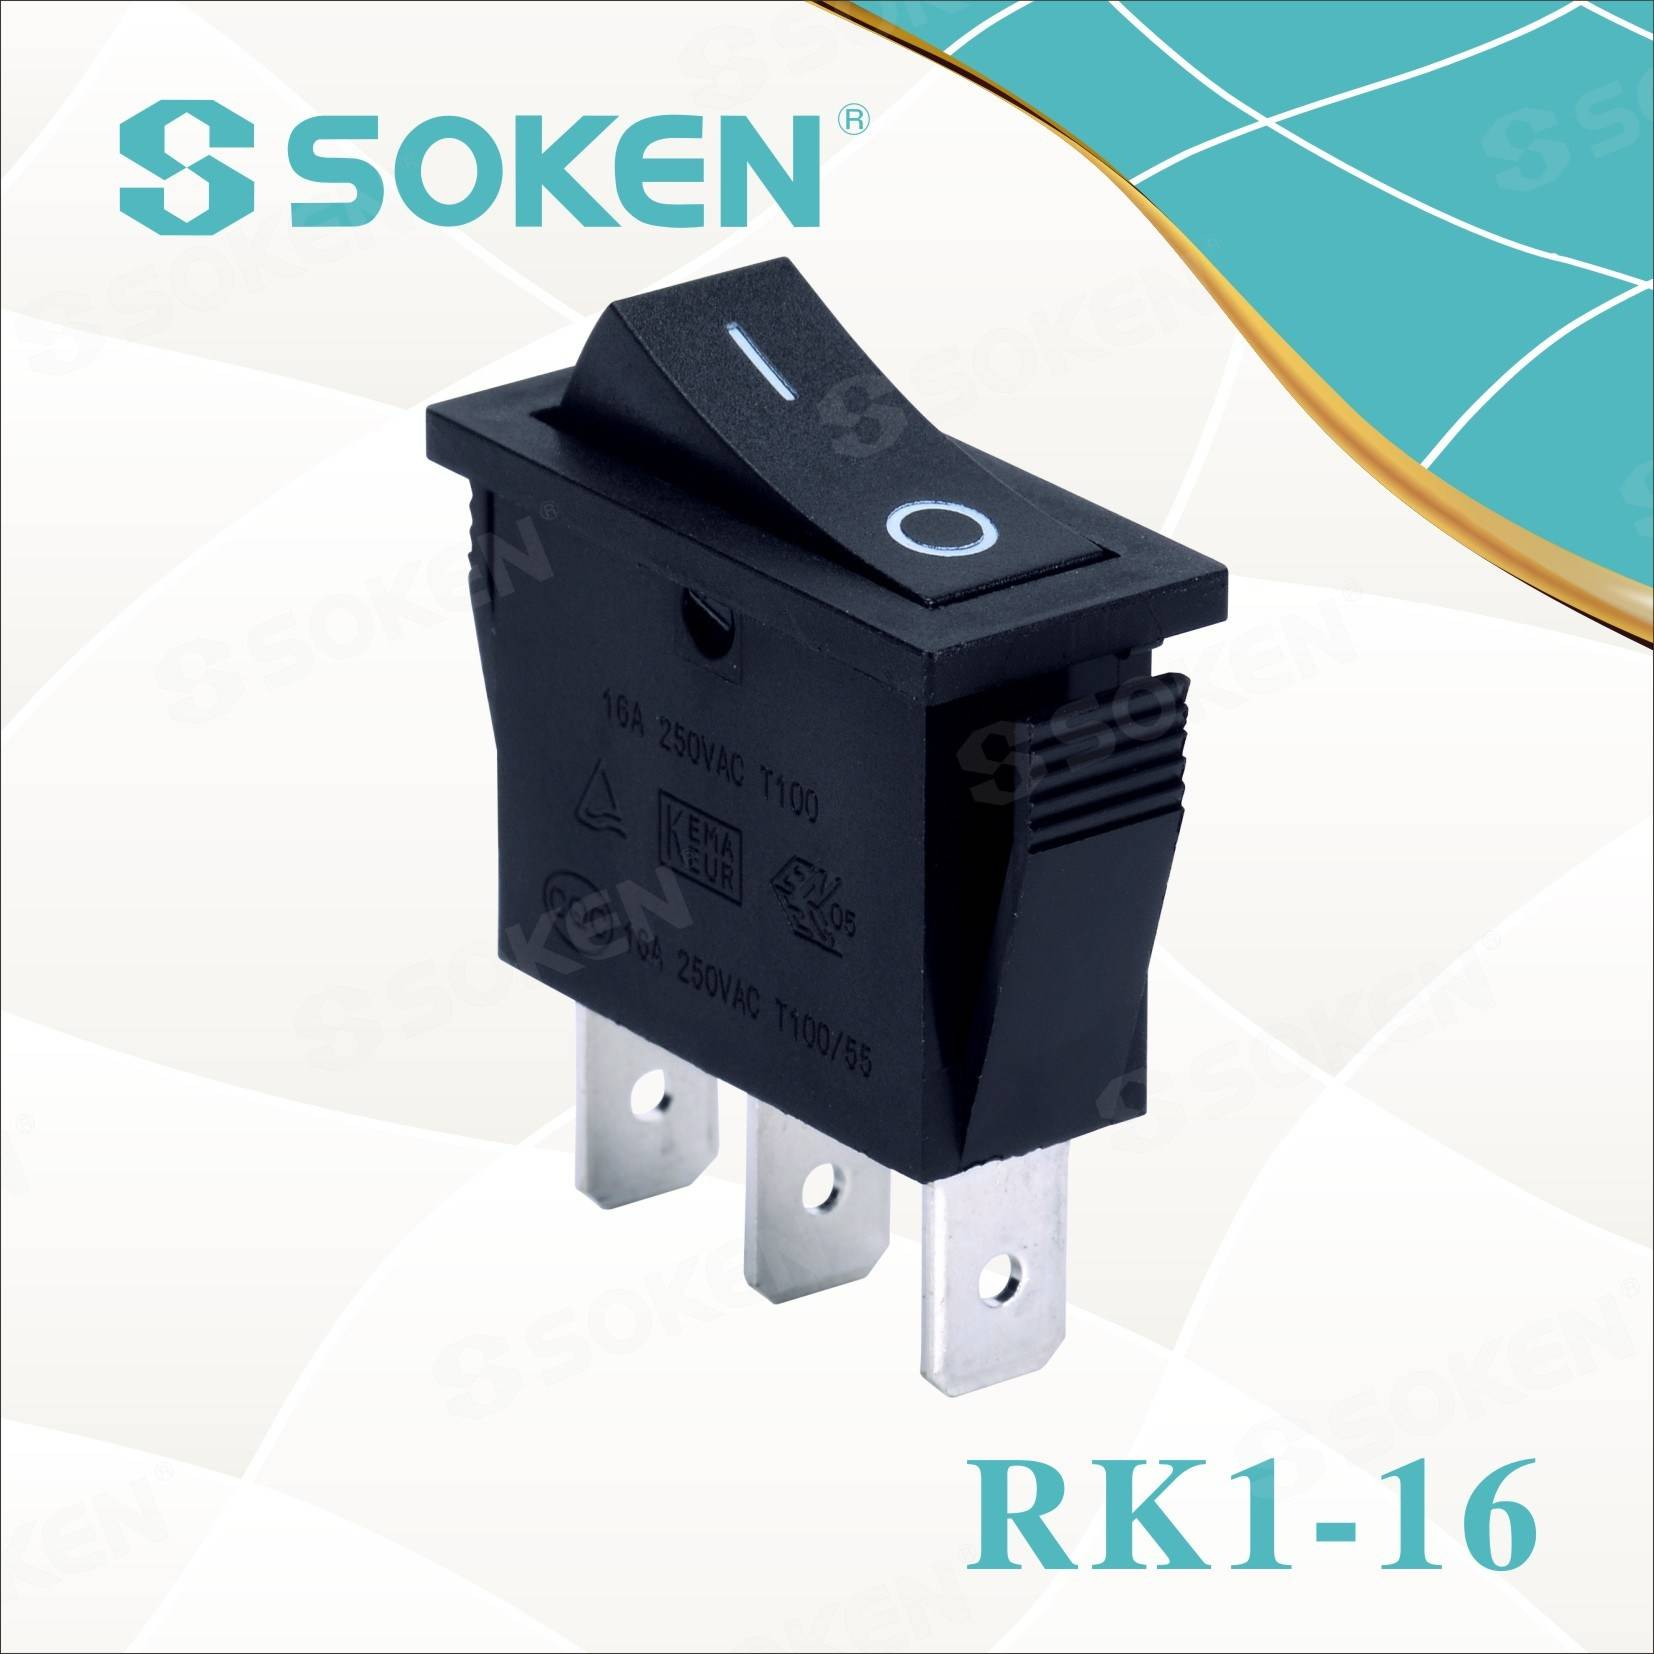 Soken Rk1-16 1X2 on on Rocker Switch